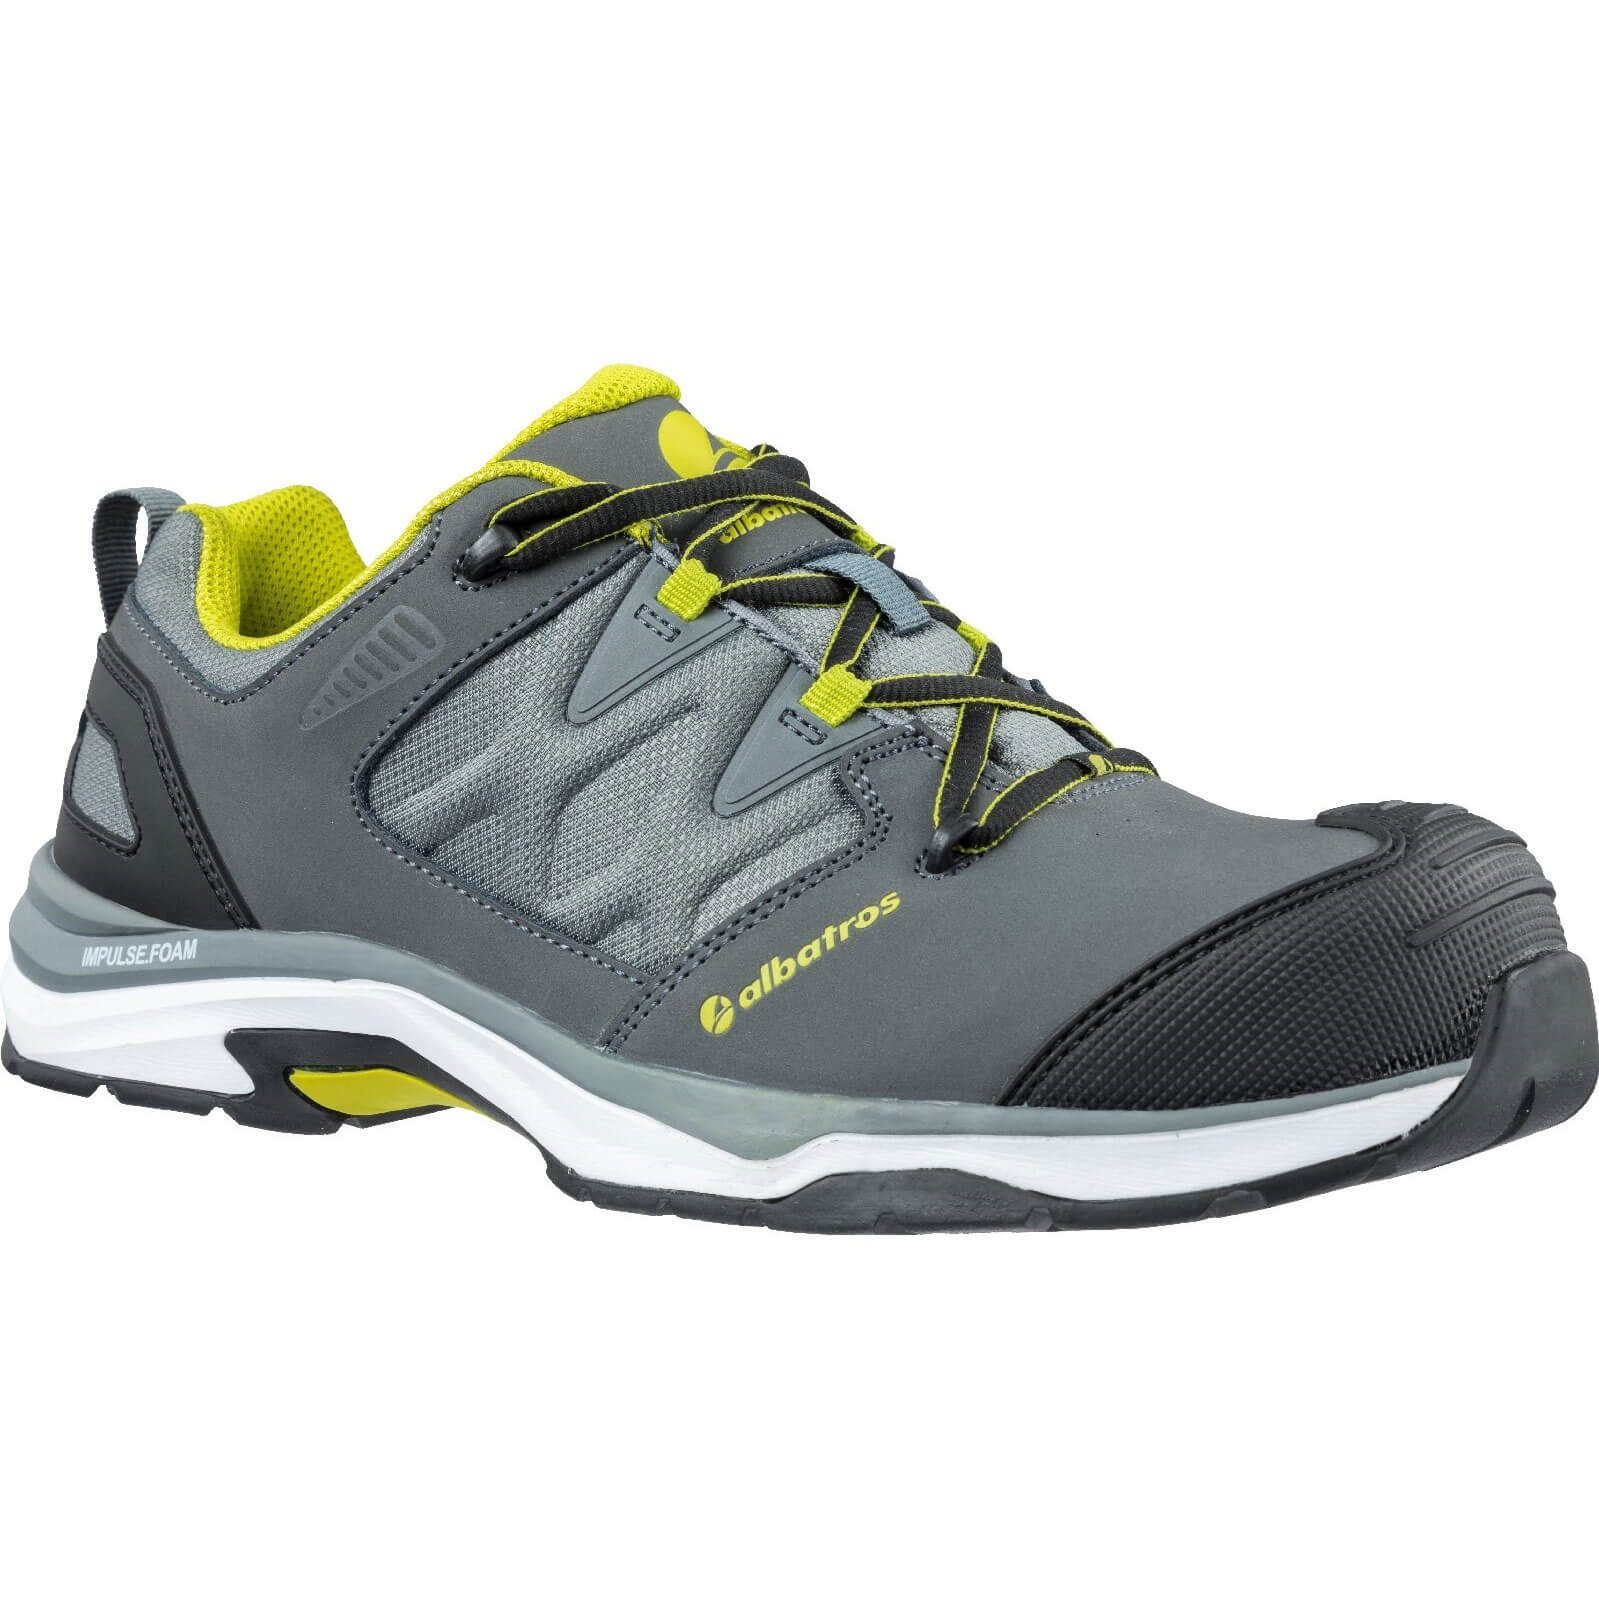 Image of Albatros Ultratrail Low Lace Up Safety Shoe Grey Size 8